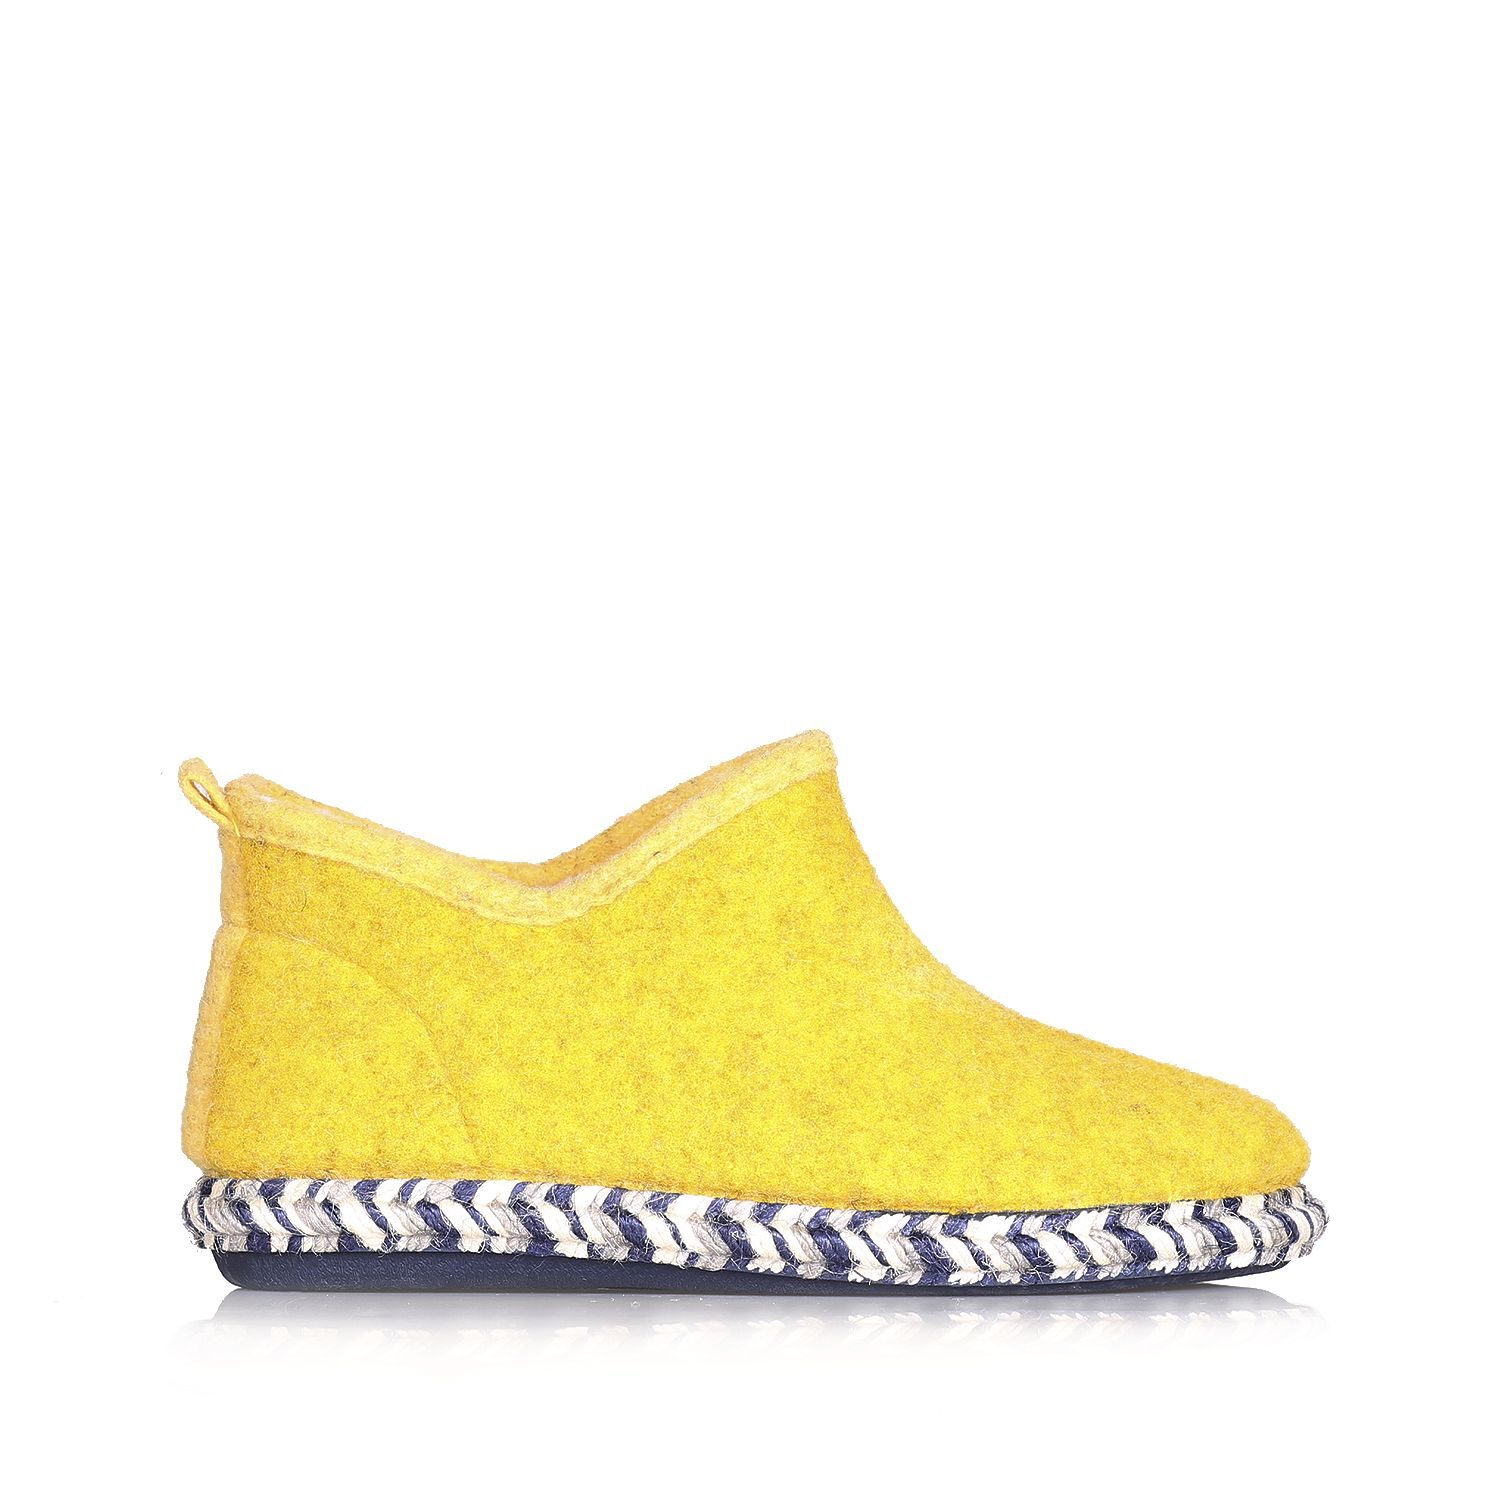 Bootie slippers for women - MAIA-FP